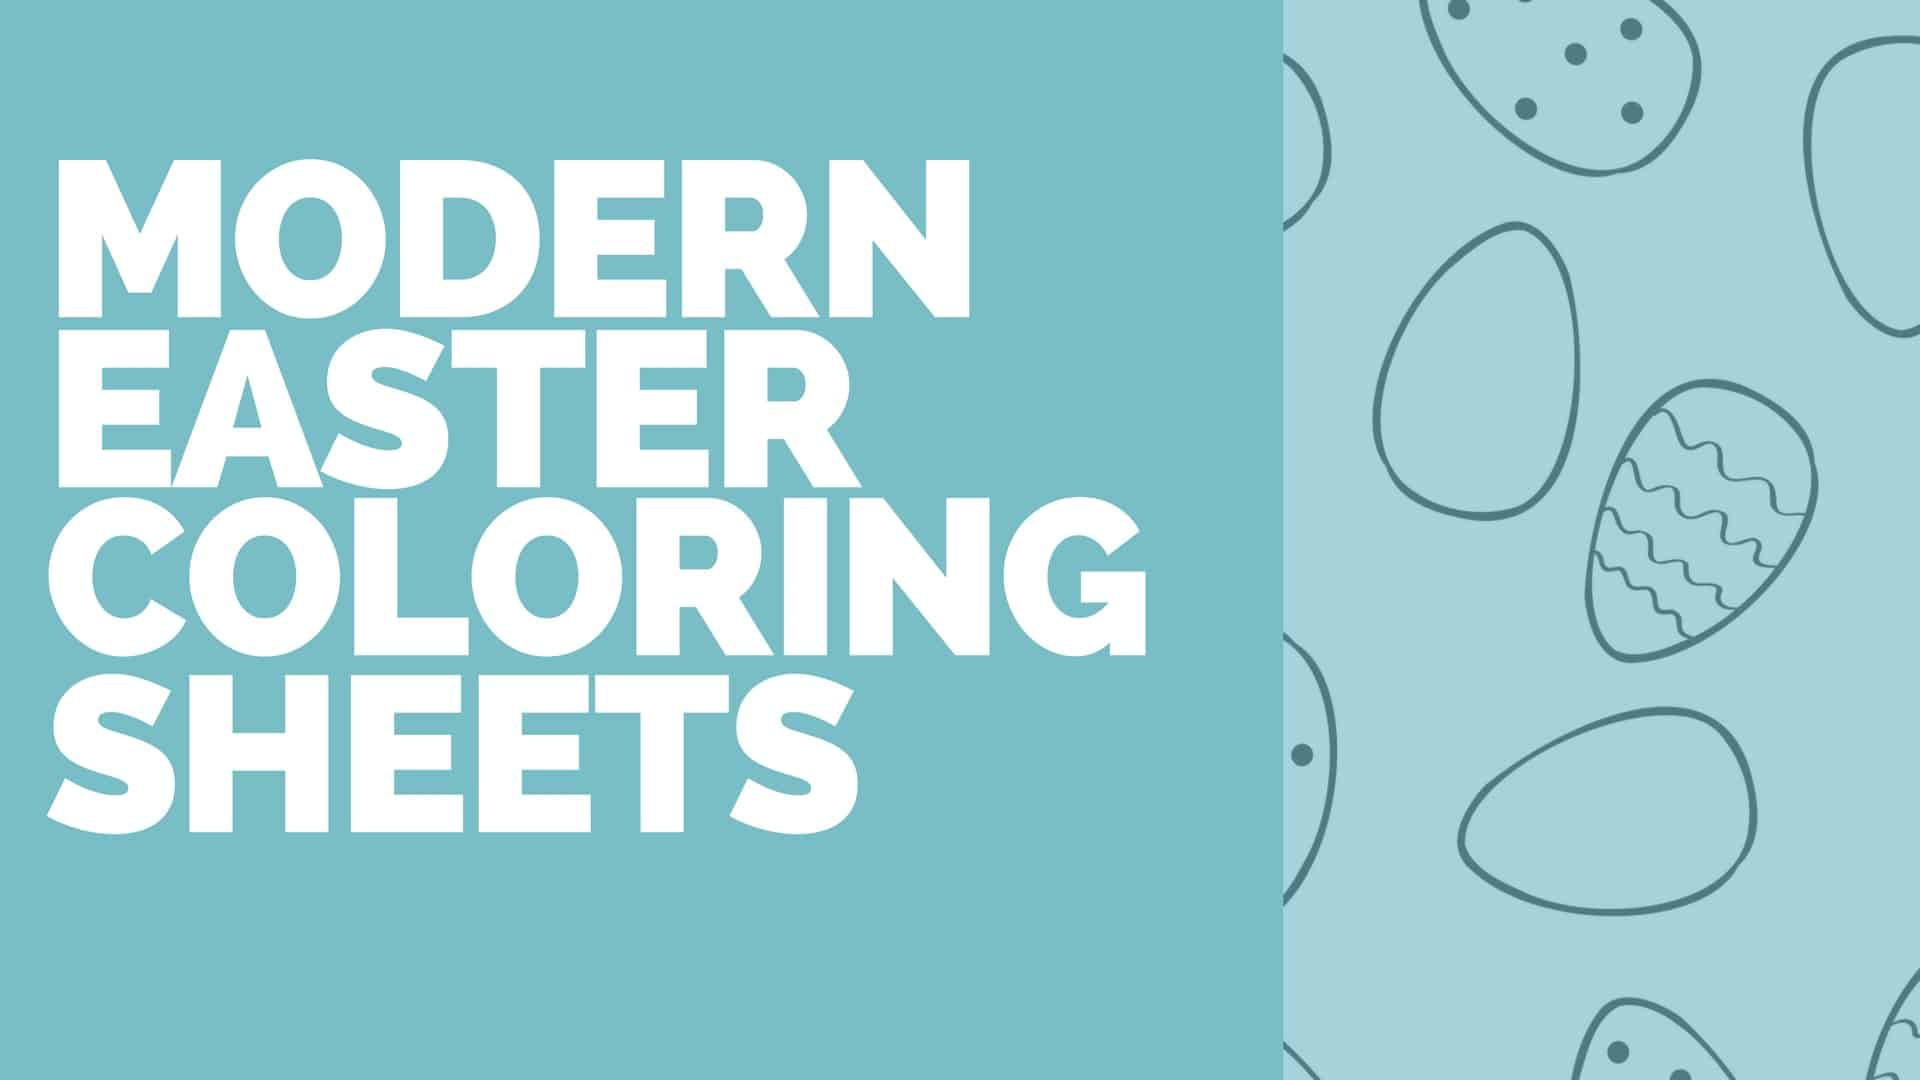 Free Printable Modern Easter Colouring Sheets for Kids